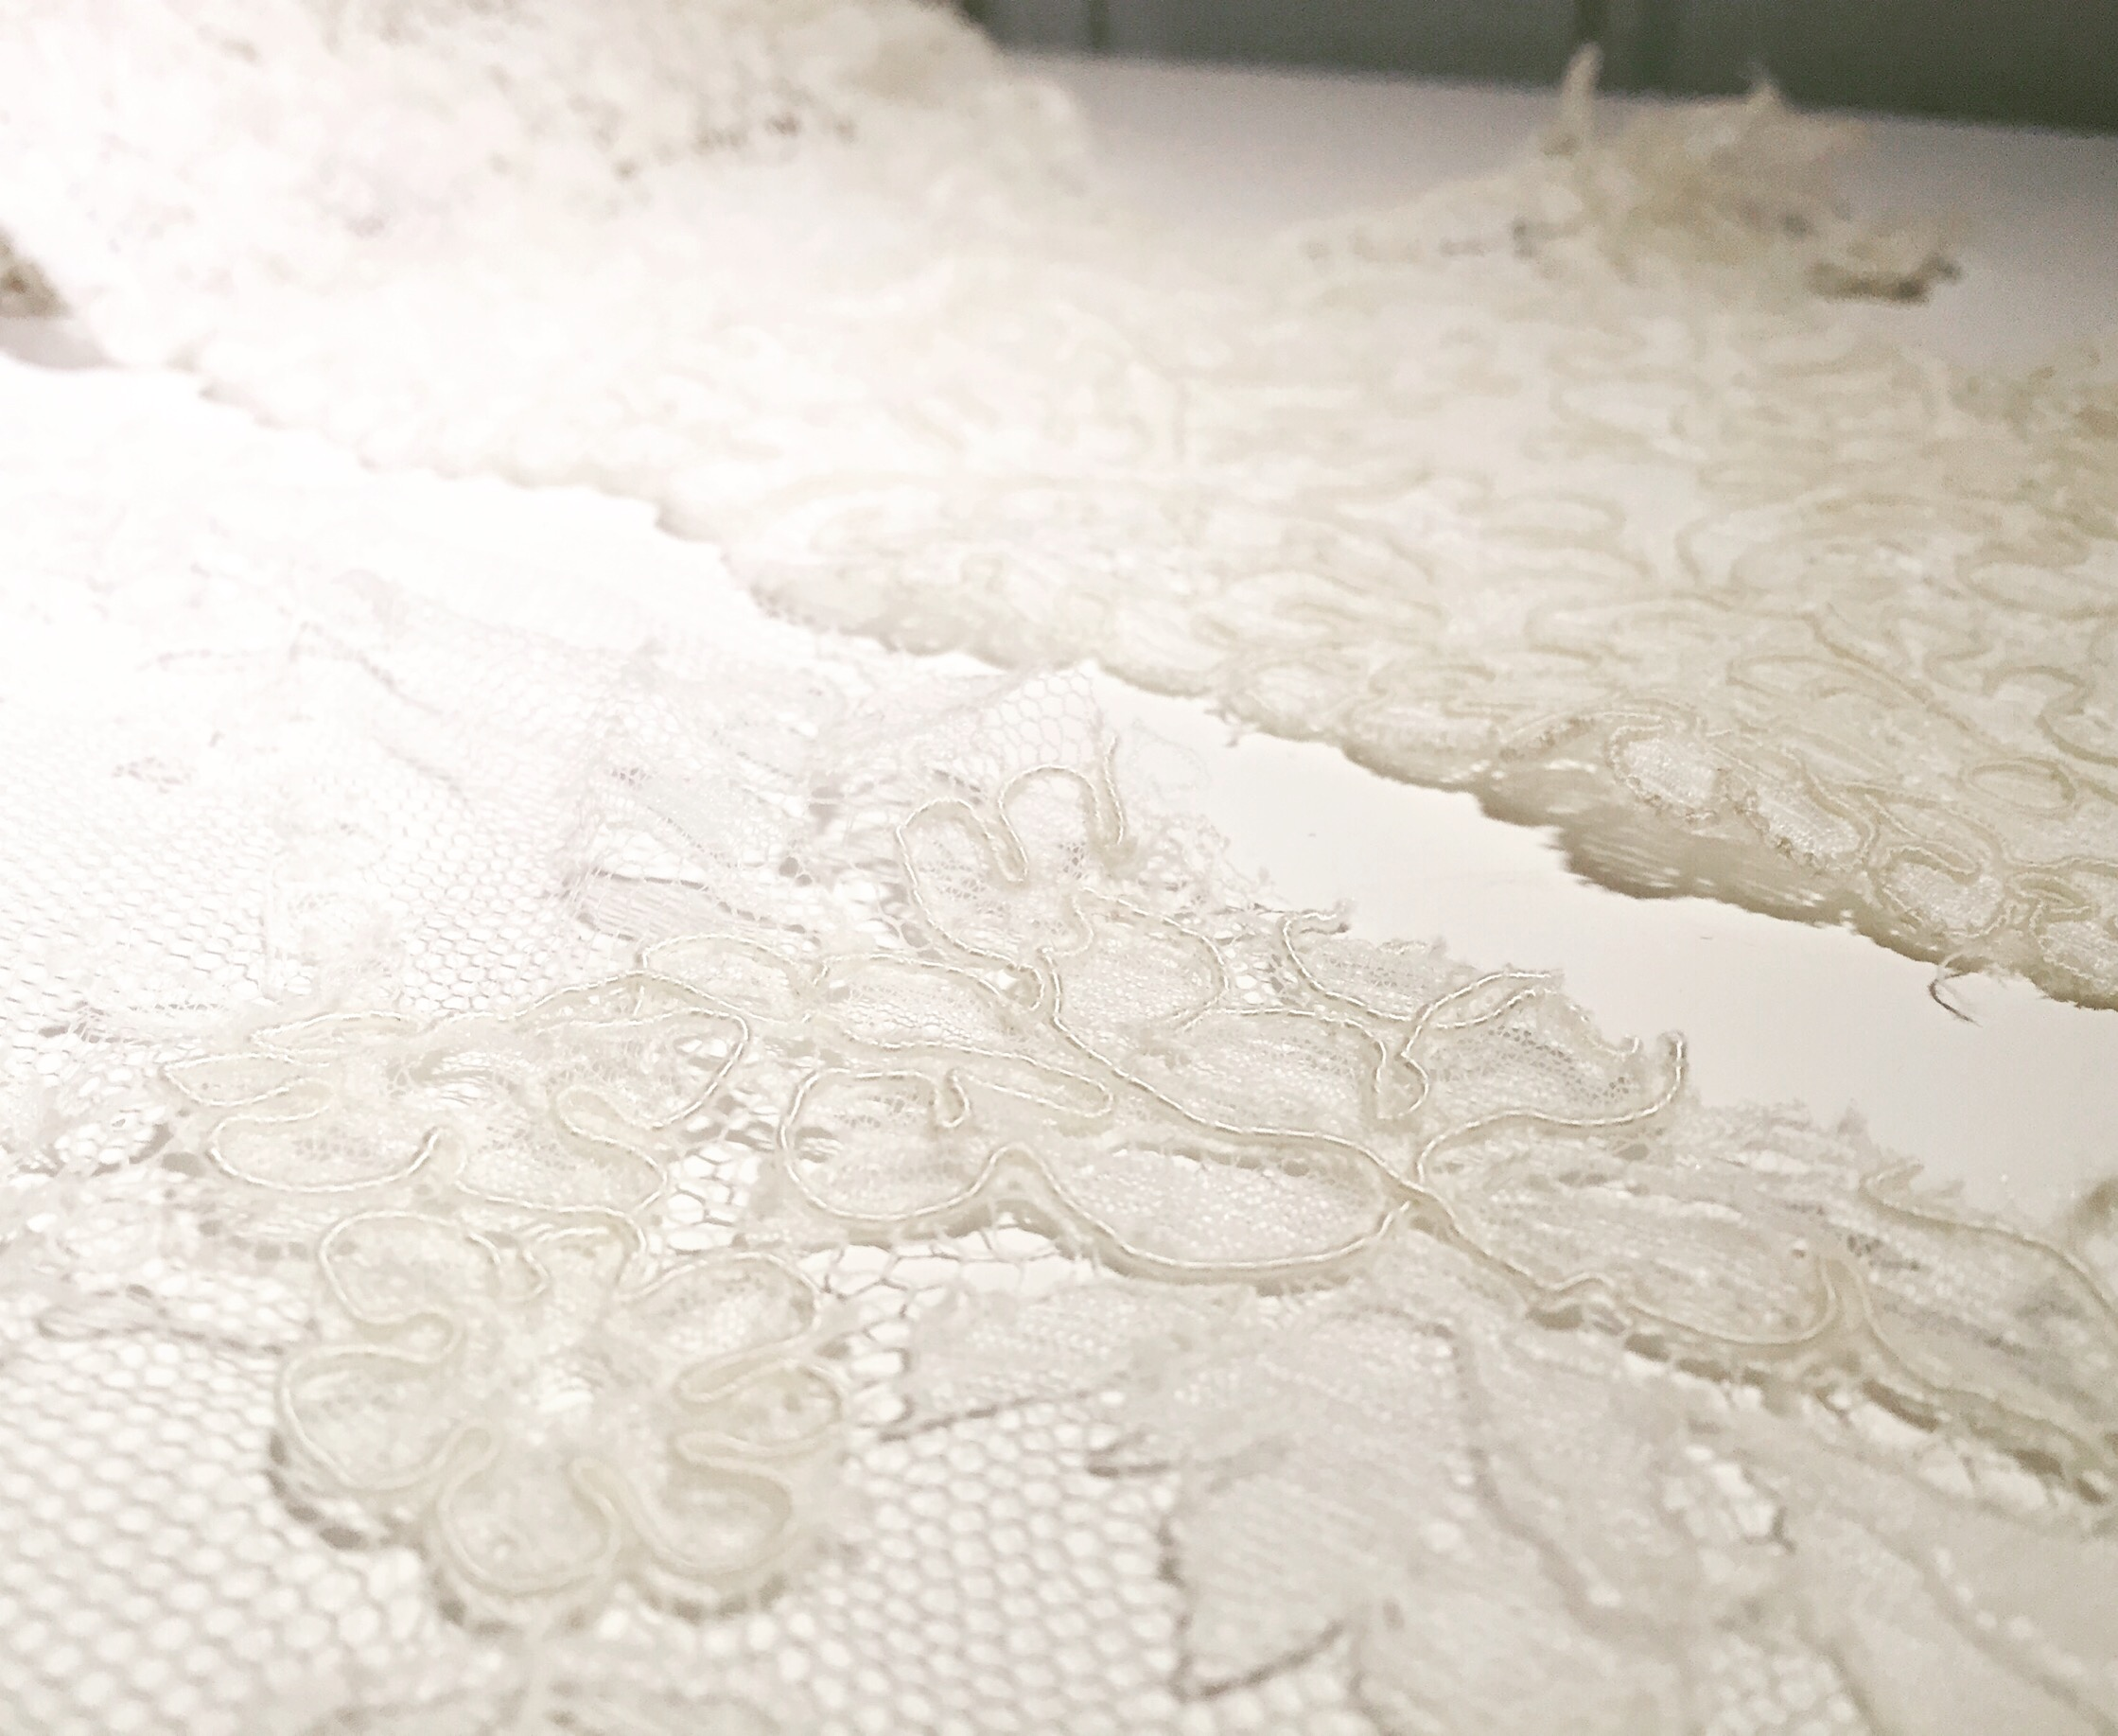 Alençon lace. It is distinguishable from other laces by its heavy cord or thread on a fine mesh, usually outlining a floral motif. It's light and soft to the touch, but sturdy enough to cut and use all over a dress and as a detail, perhaps on a veil. Extra fact: Real alençon lace is a needle lace originating from Alençon, France, and the craftsmanship required to make this lace is recognized under UNESCO's list of Intangible Cultural Heritage of Humanity!